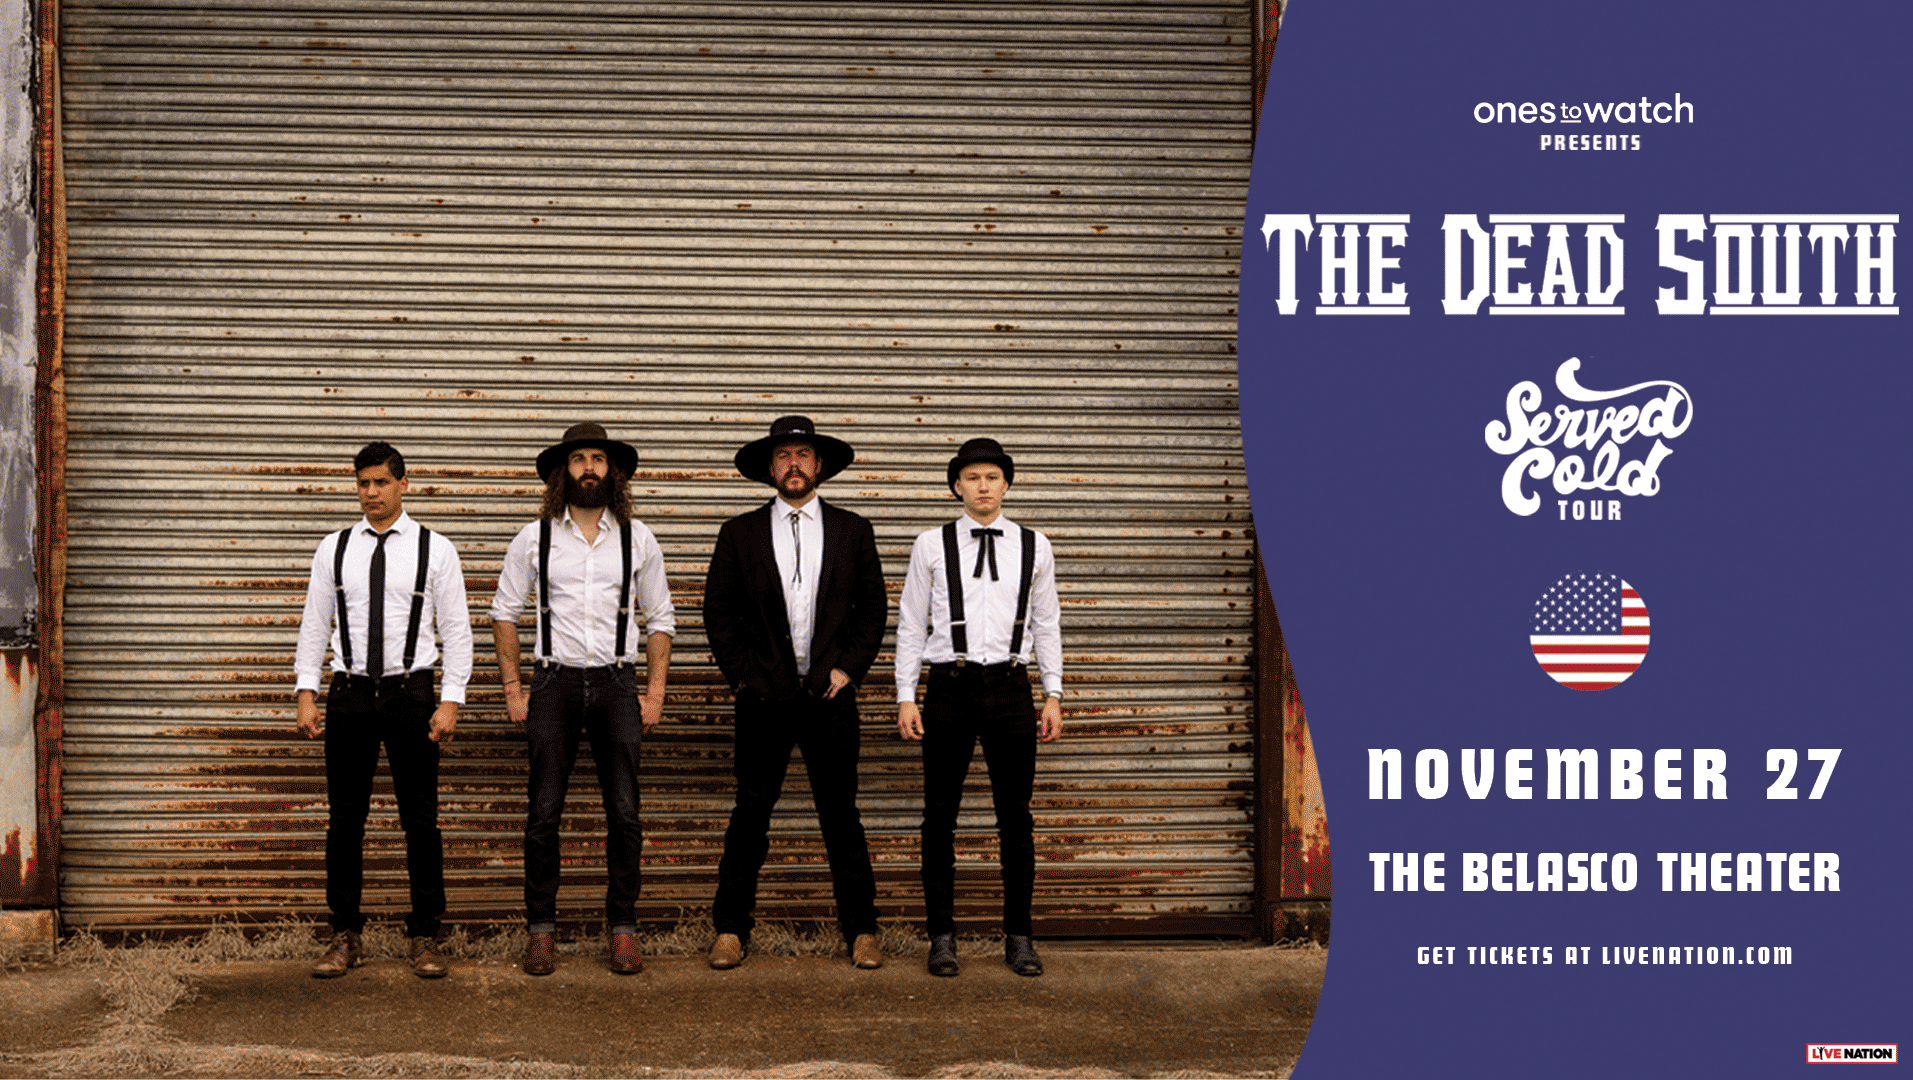 GIVEAWAY: Enter to Win Tickets to The Dead South @ the Belasco Theater (LA) 11/27